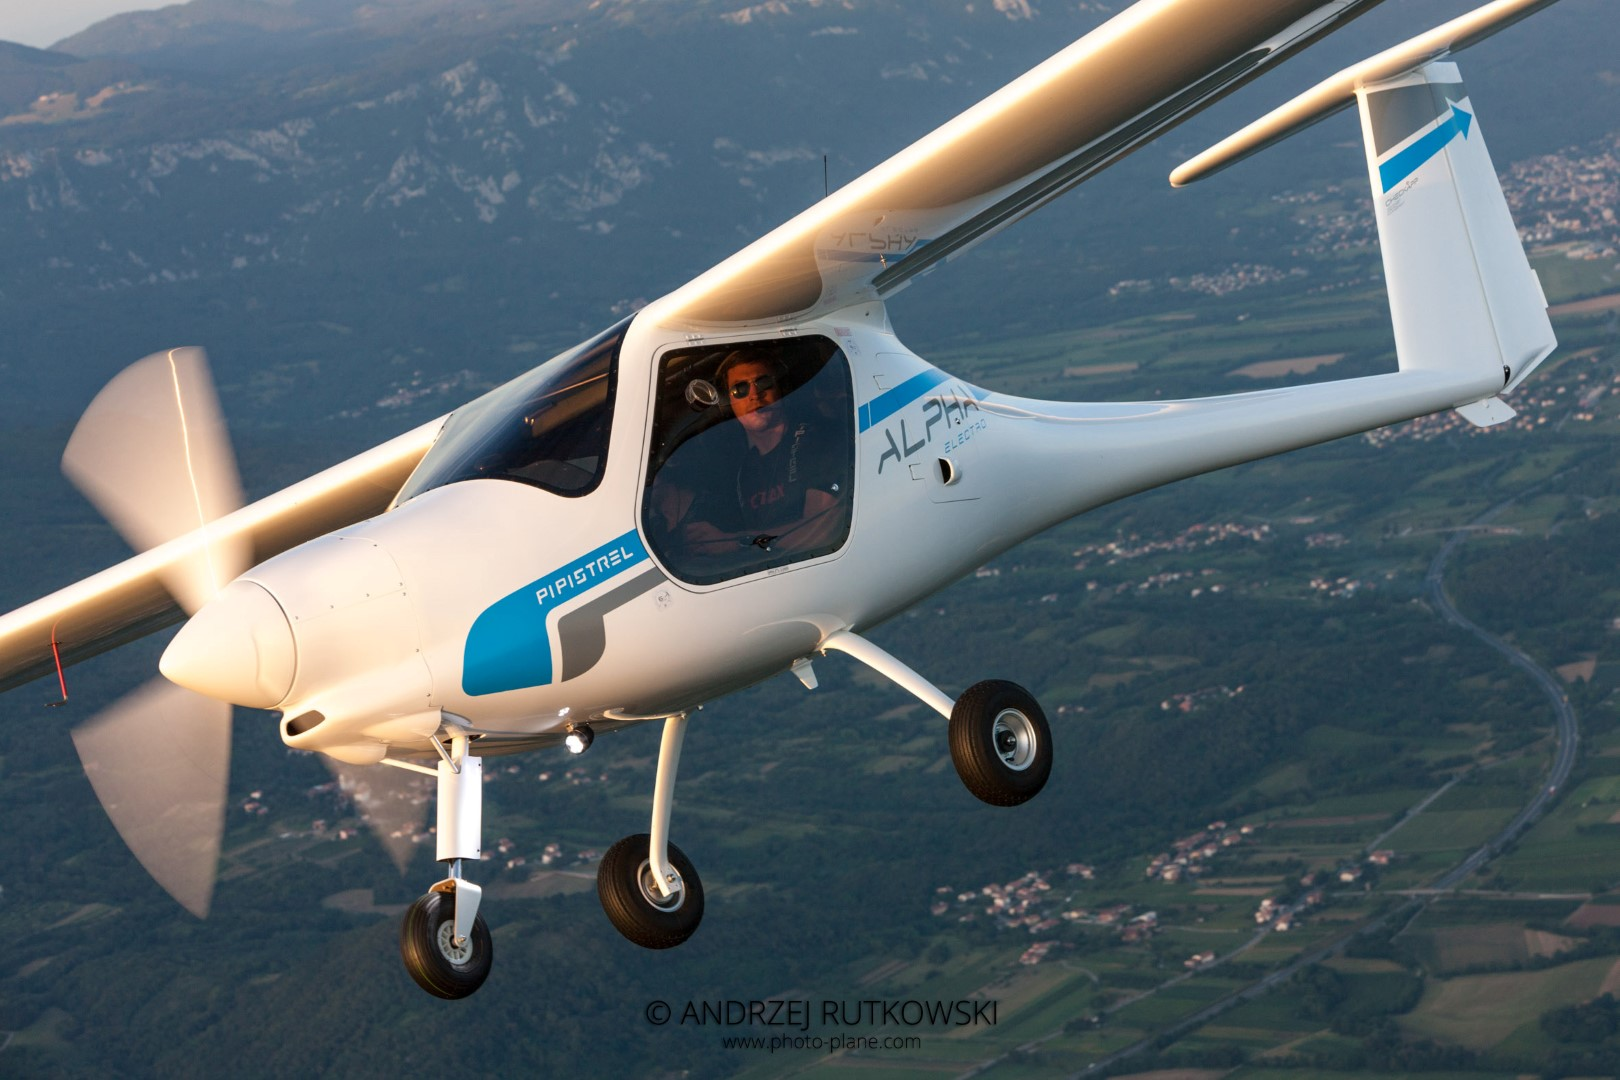 Pipistrel-Alpha-Electro-aircraft-zero-emissions-electric-aircraft-LSA-approved-for-training-operations-and-flight-schools-24